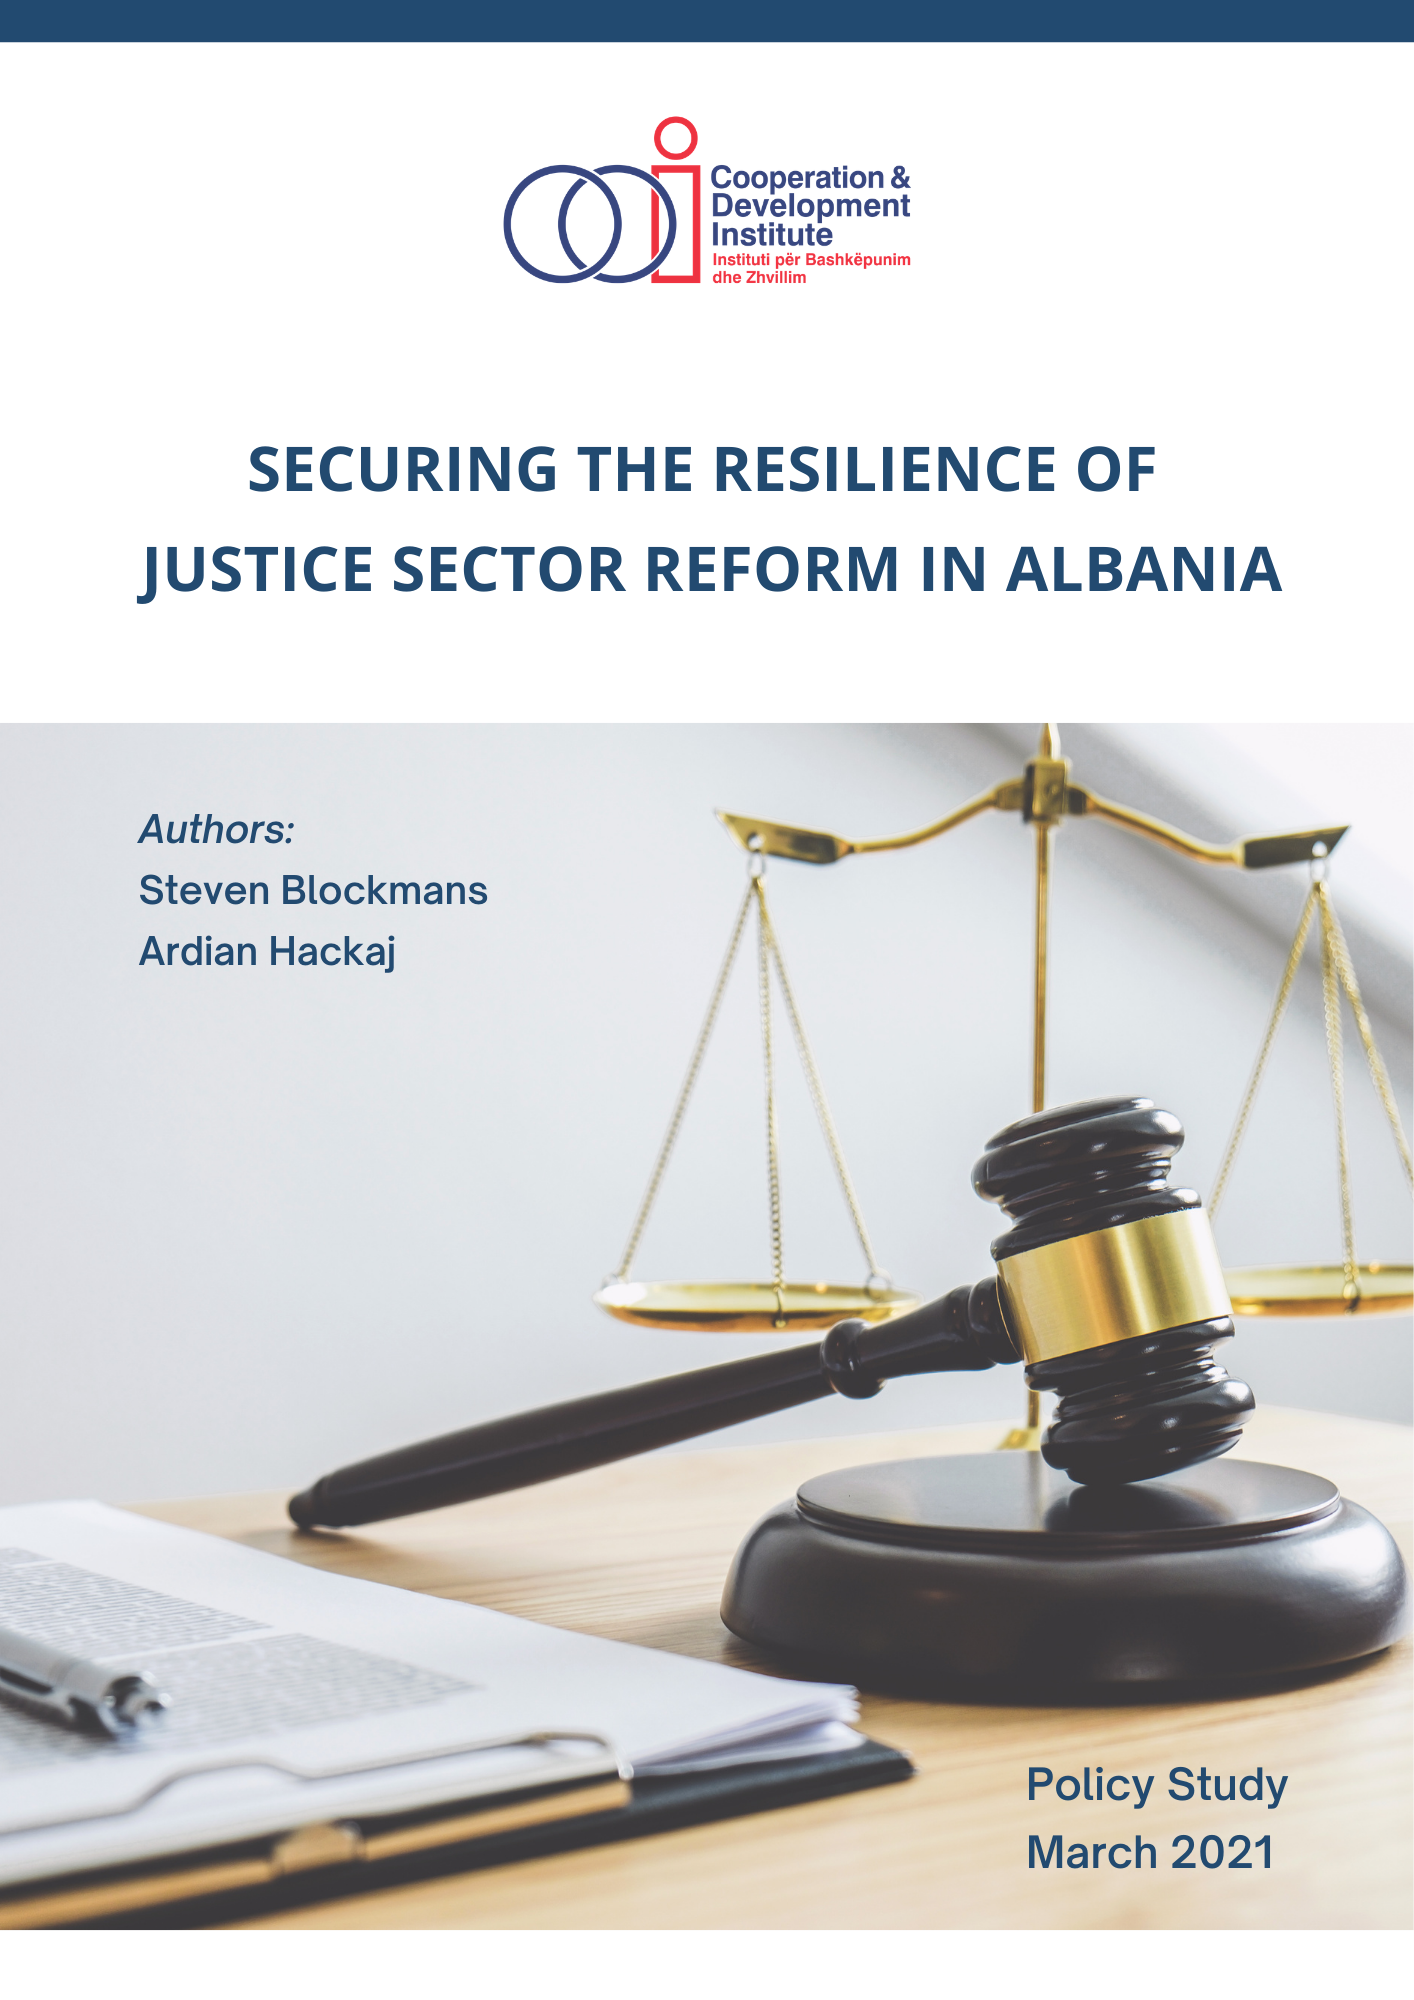 Securing the Resilience of Justice Sector Reform in Albania